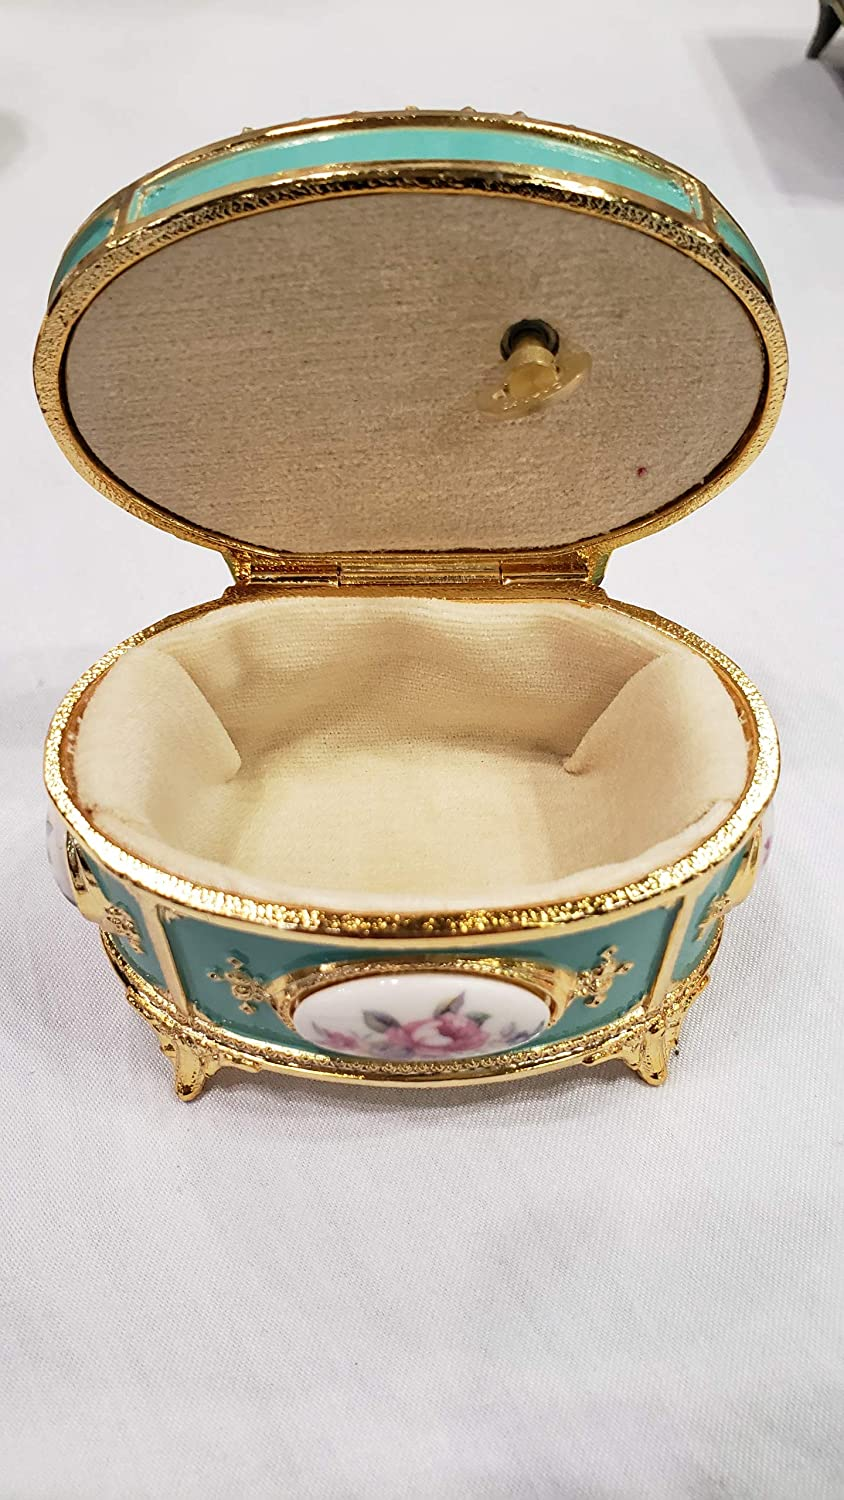 Sea Foam Green Oval Shaped Musical Jewelry Box playing My Heart Will Go On